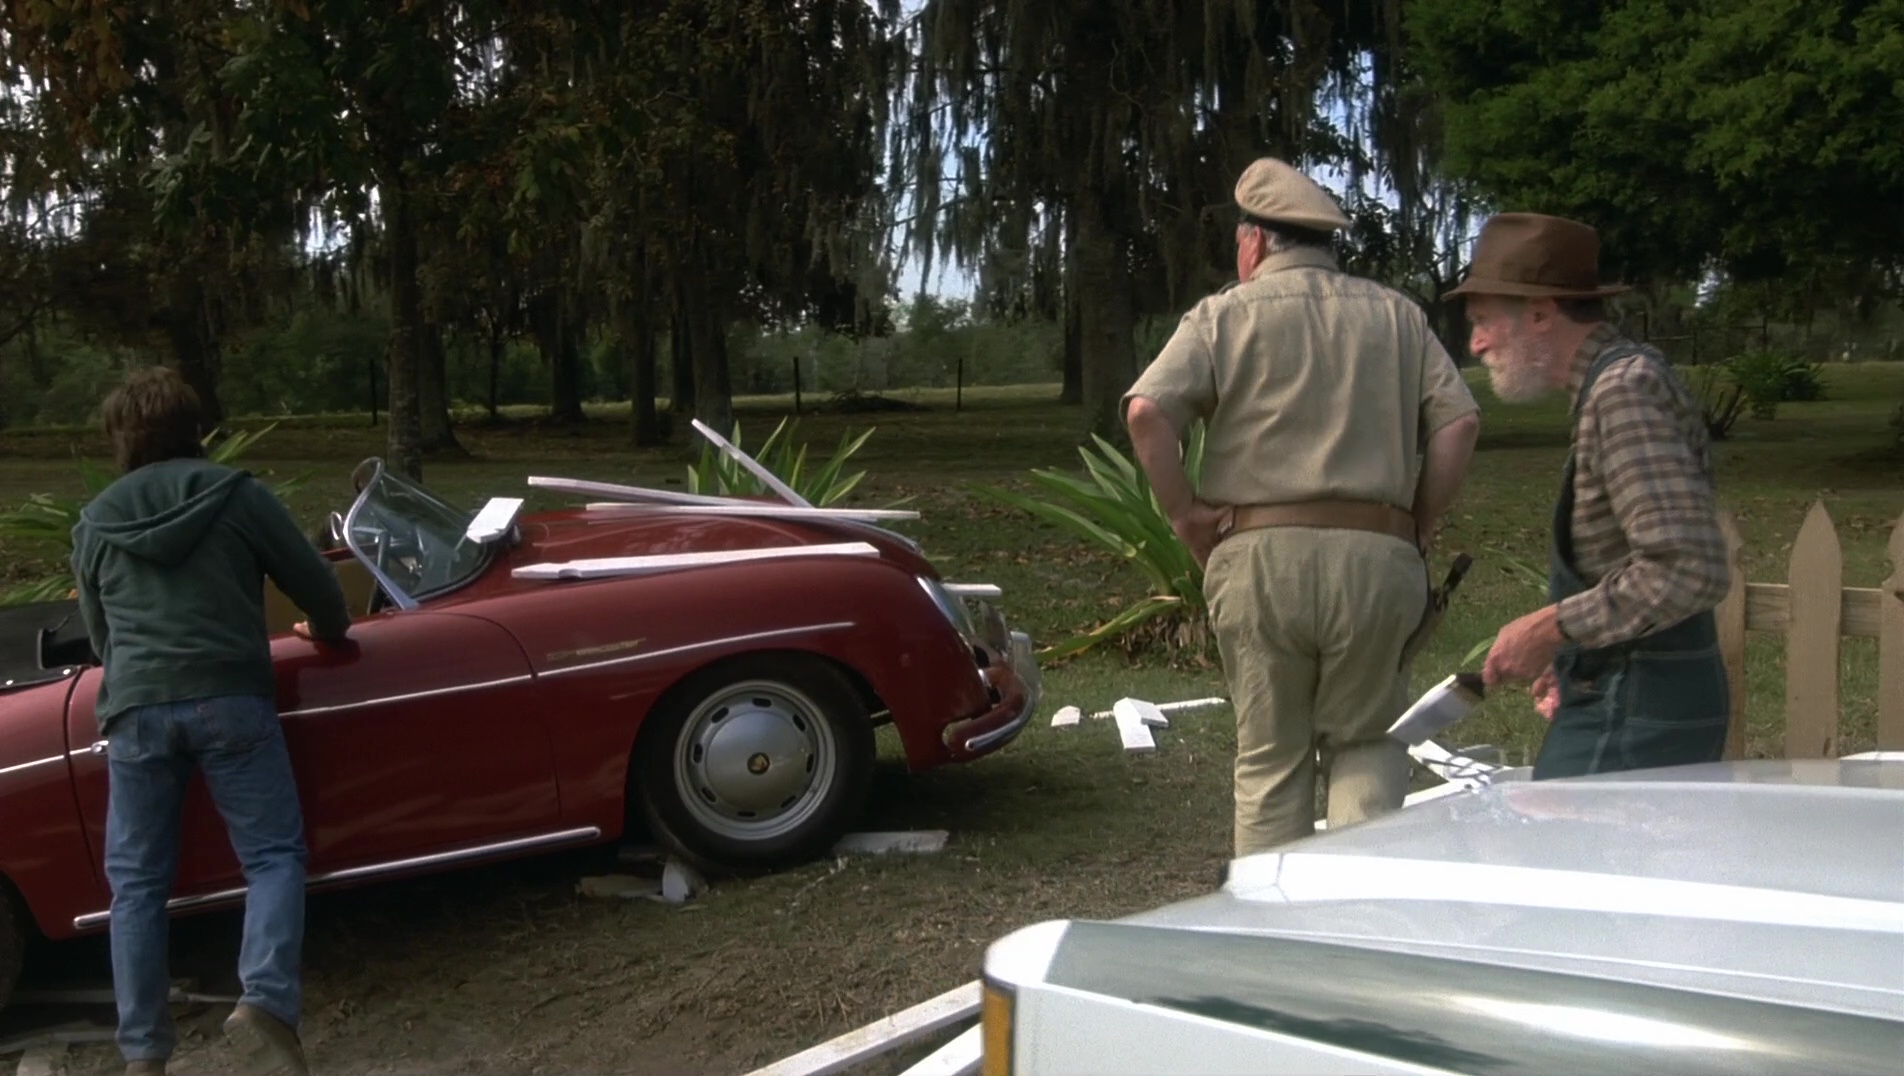 1957 Porsche 356 A Speedster Car Used By Michael J Fox In Doc Hollywood 1991 Movie Scenes